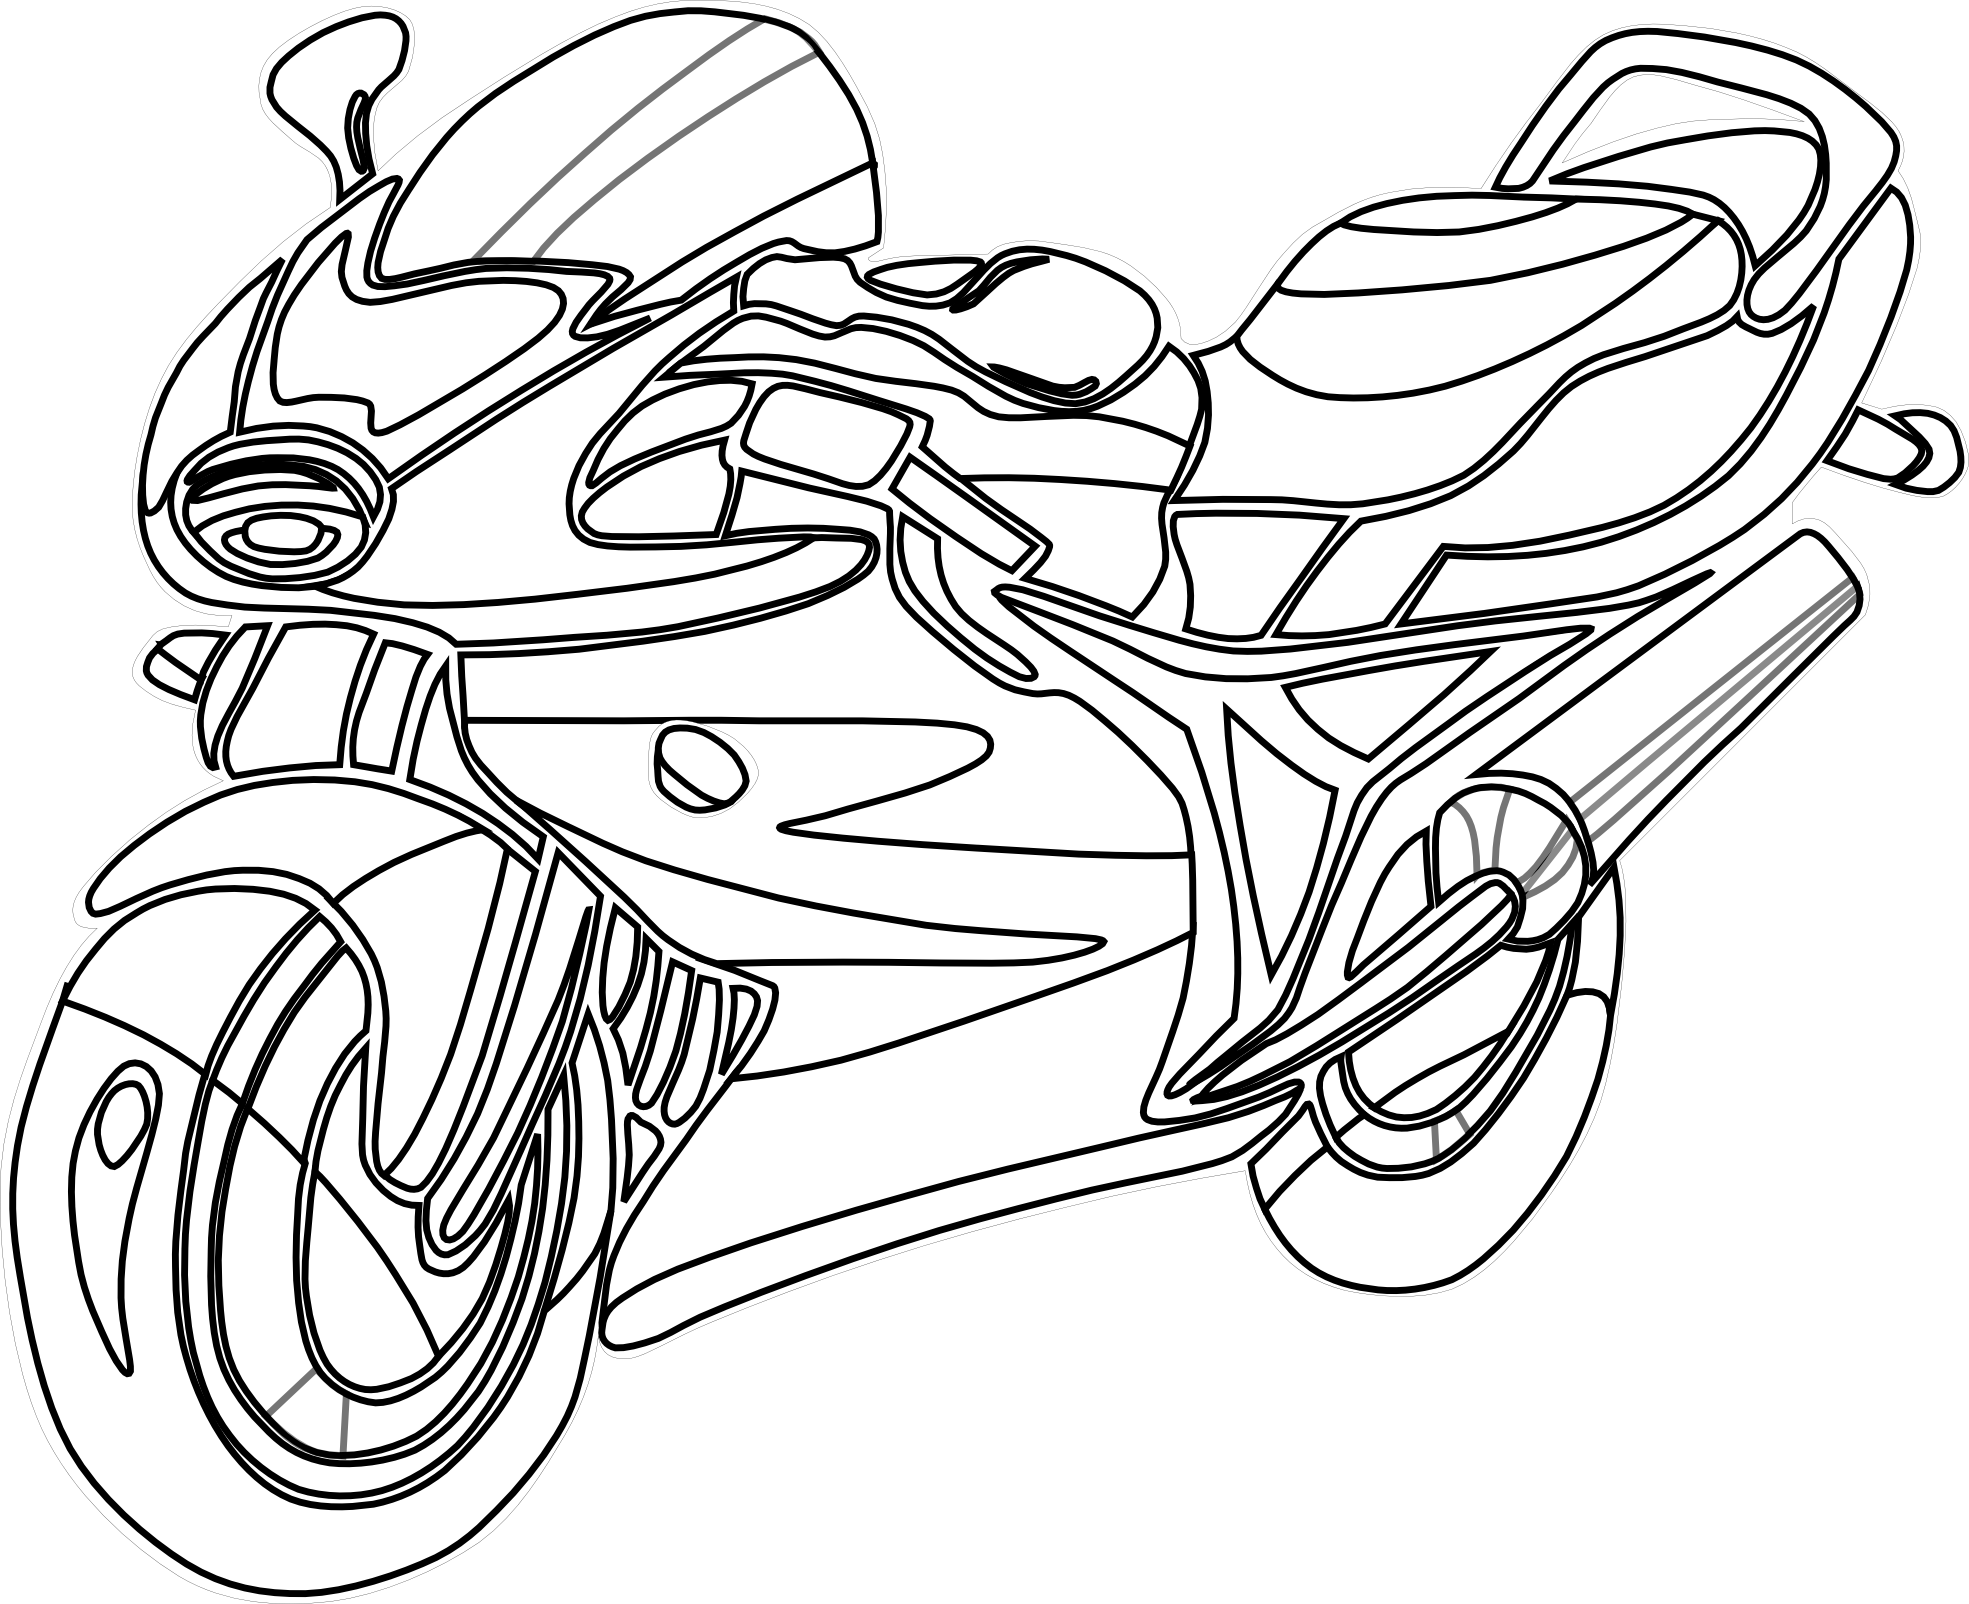 motorcycle color pages motorcycle drawing for kids at getdrawings free download pages color motorcycle